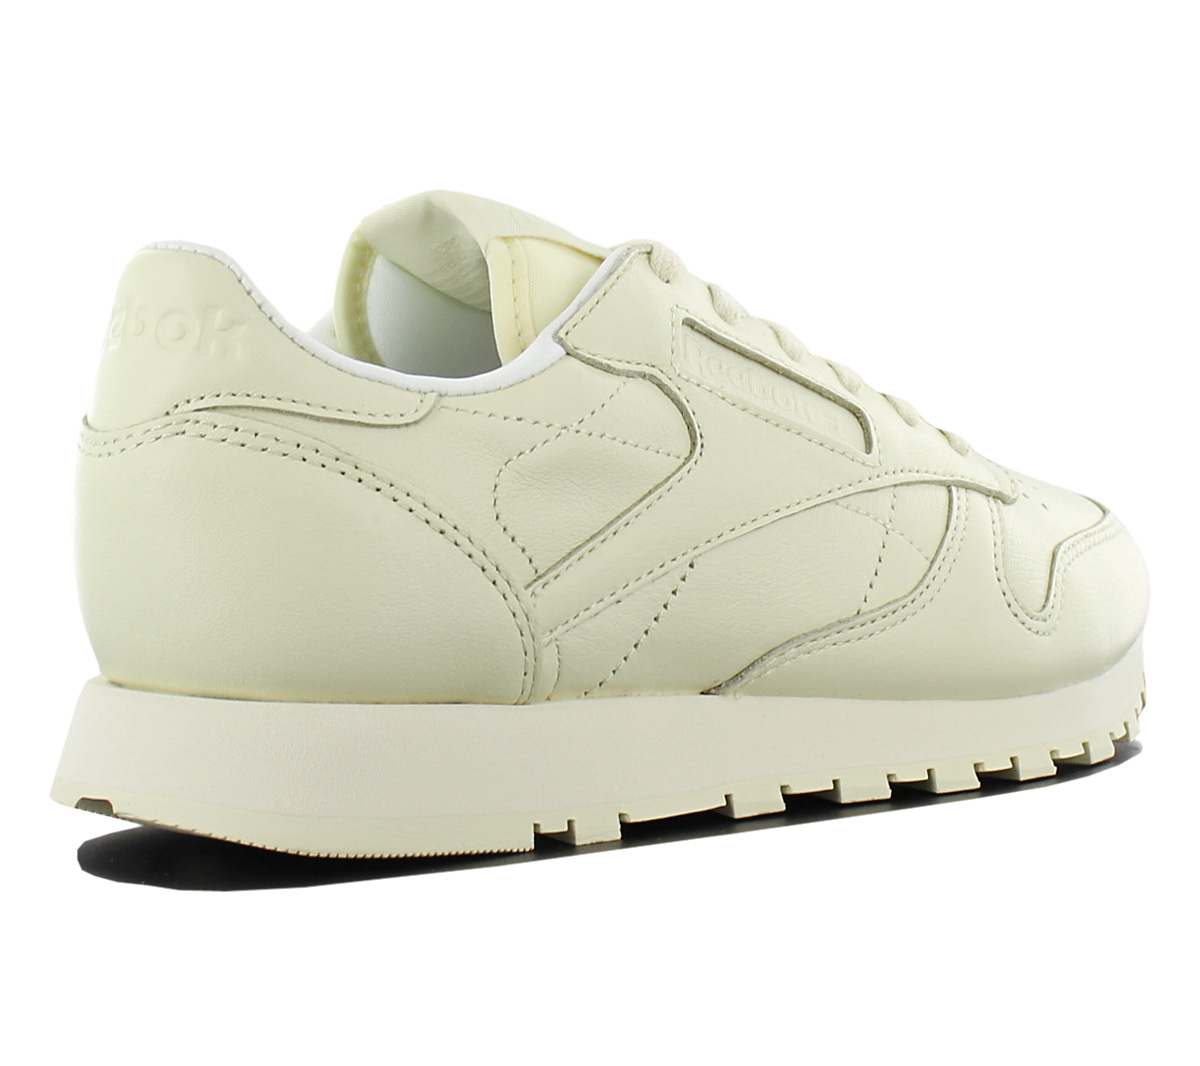 165e790ed53a42 Reebok Classic Leather Pastels Women s Sneakers Leather Shoes Cl ...